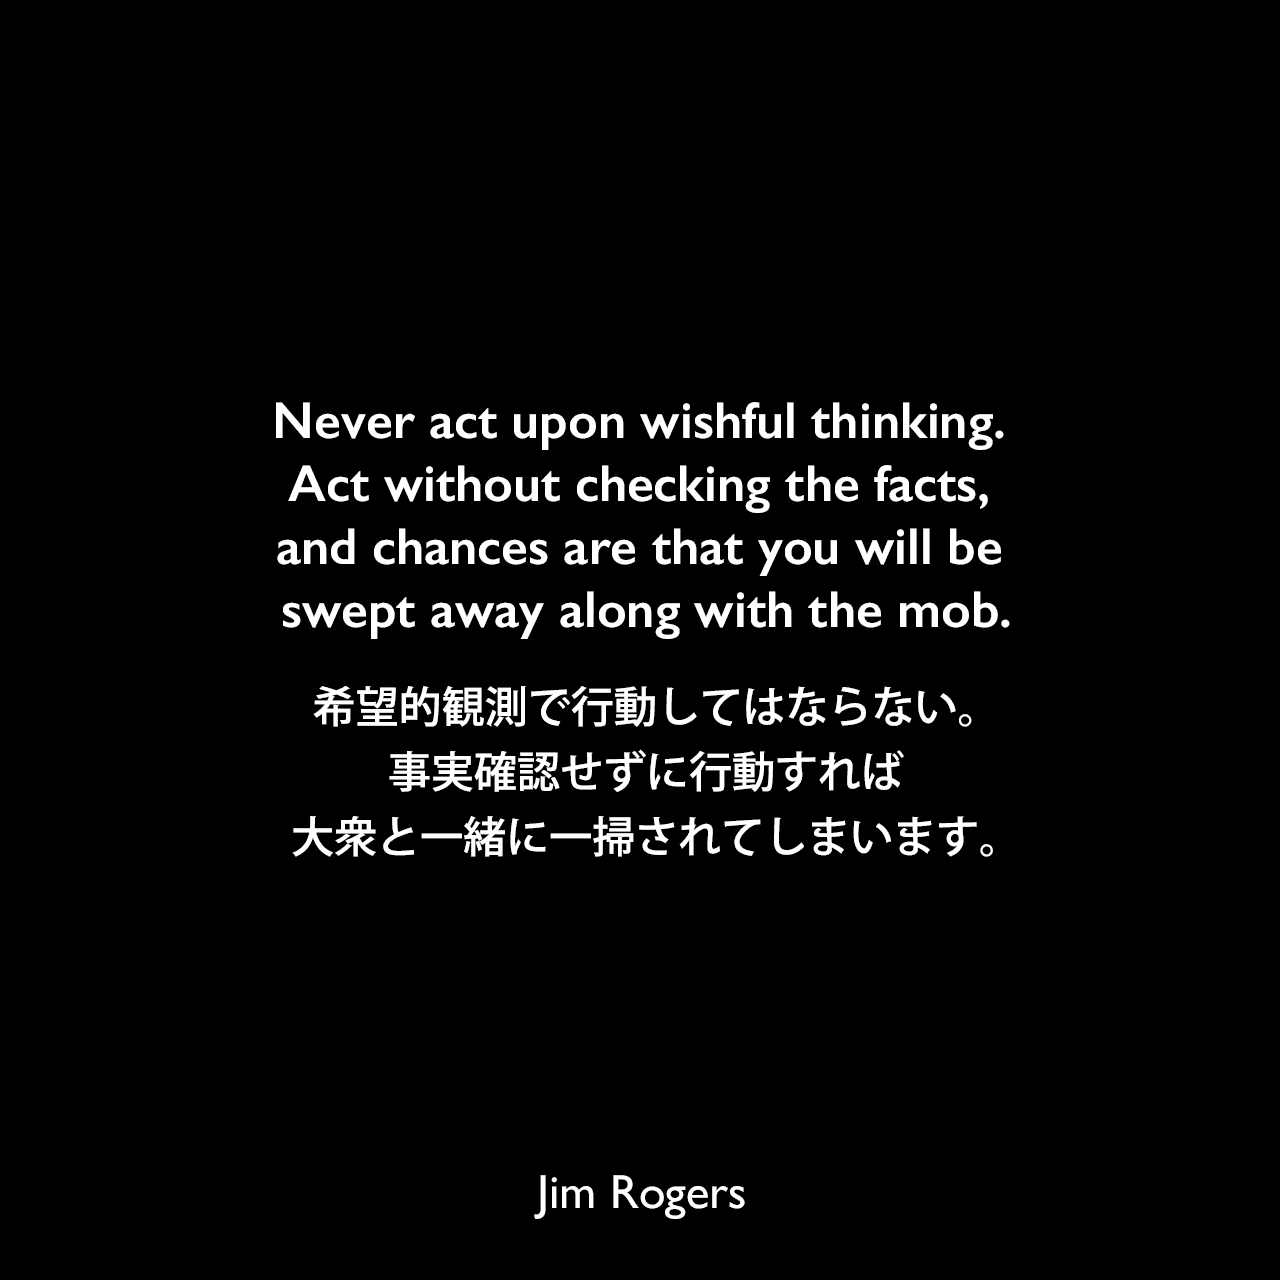 Never act upon wishful thinking. Act without checking the facts, and chances are that you will be swept away along with the mob.希望的観測で行動してはならない。事実確認せずに行動すれば、大衆と一緒に一掃されてしまいます。《参照:A Gift to My Children: A Father's Lessons for Life and Investing(2009)》Jim Rogers